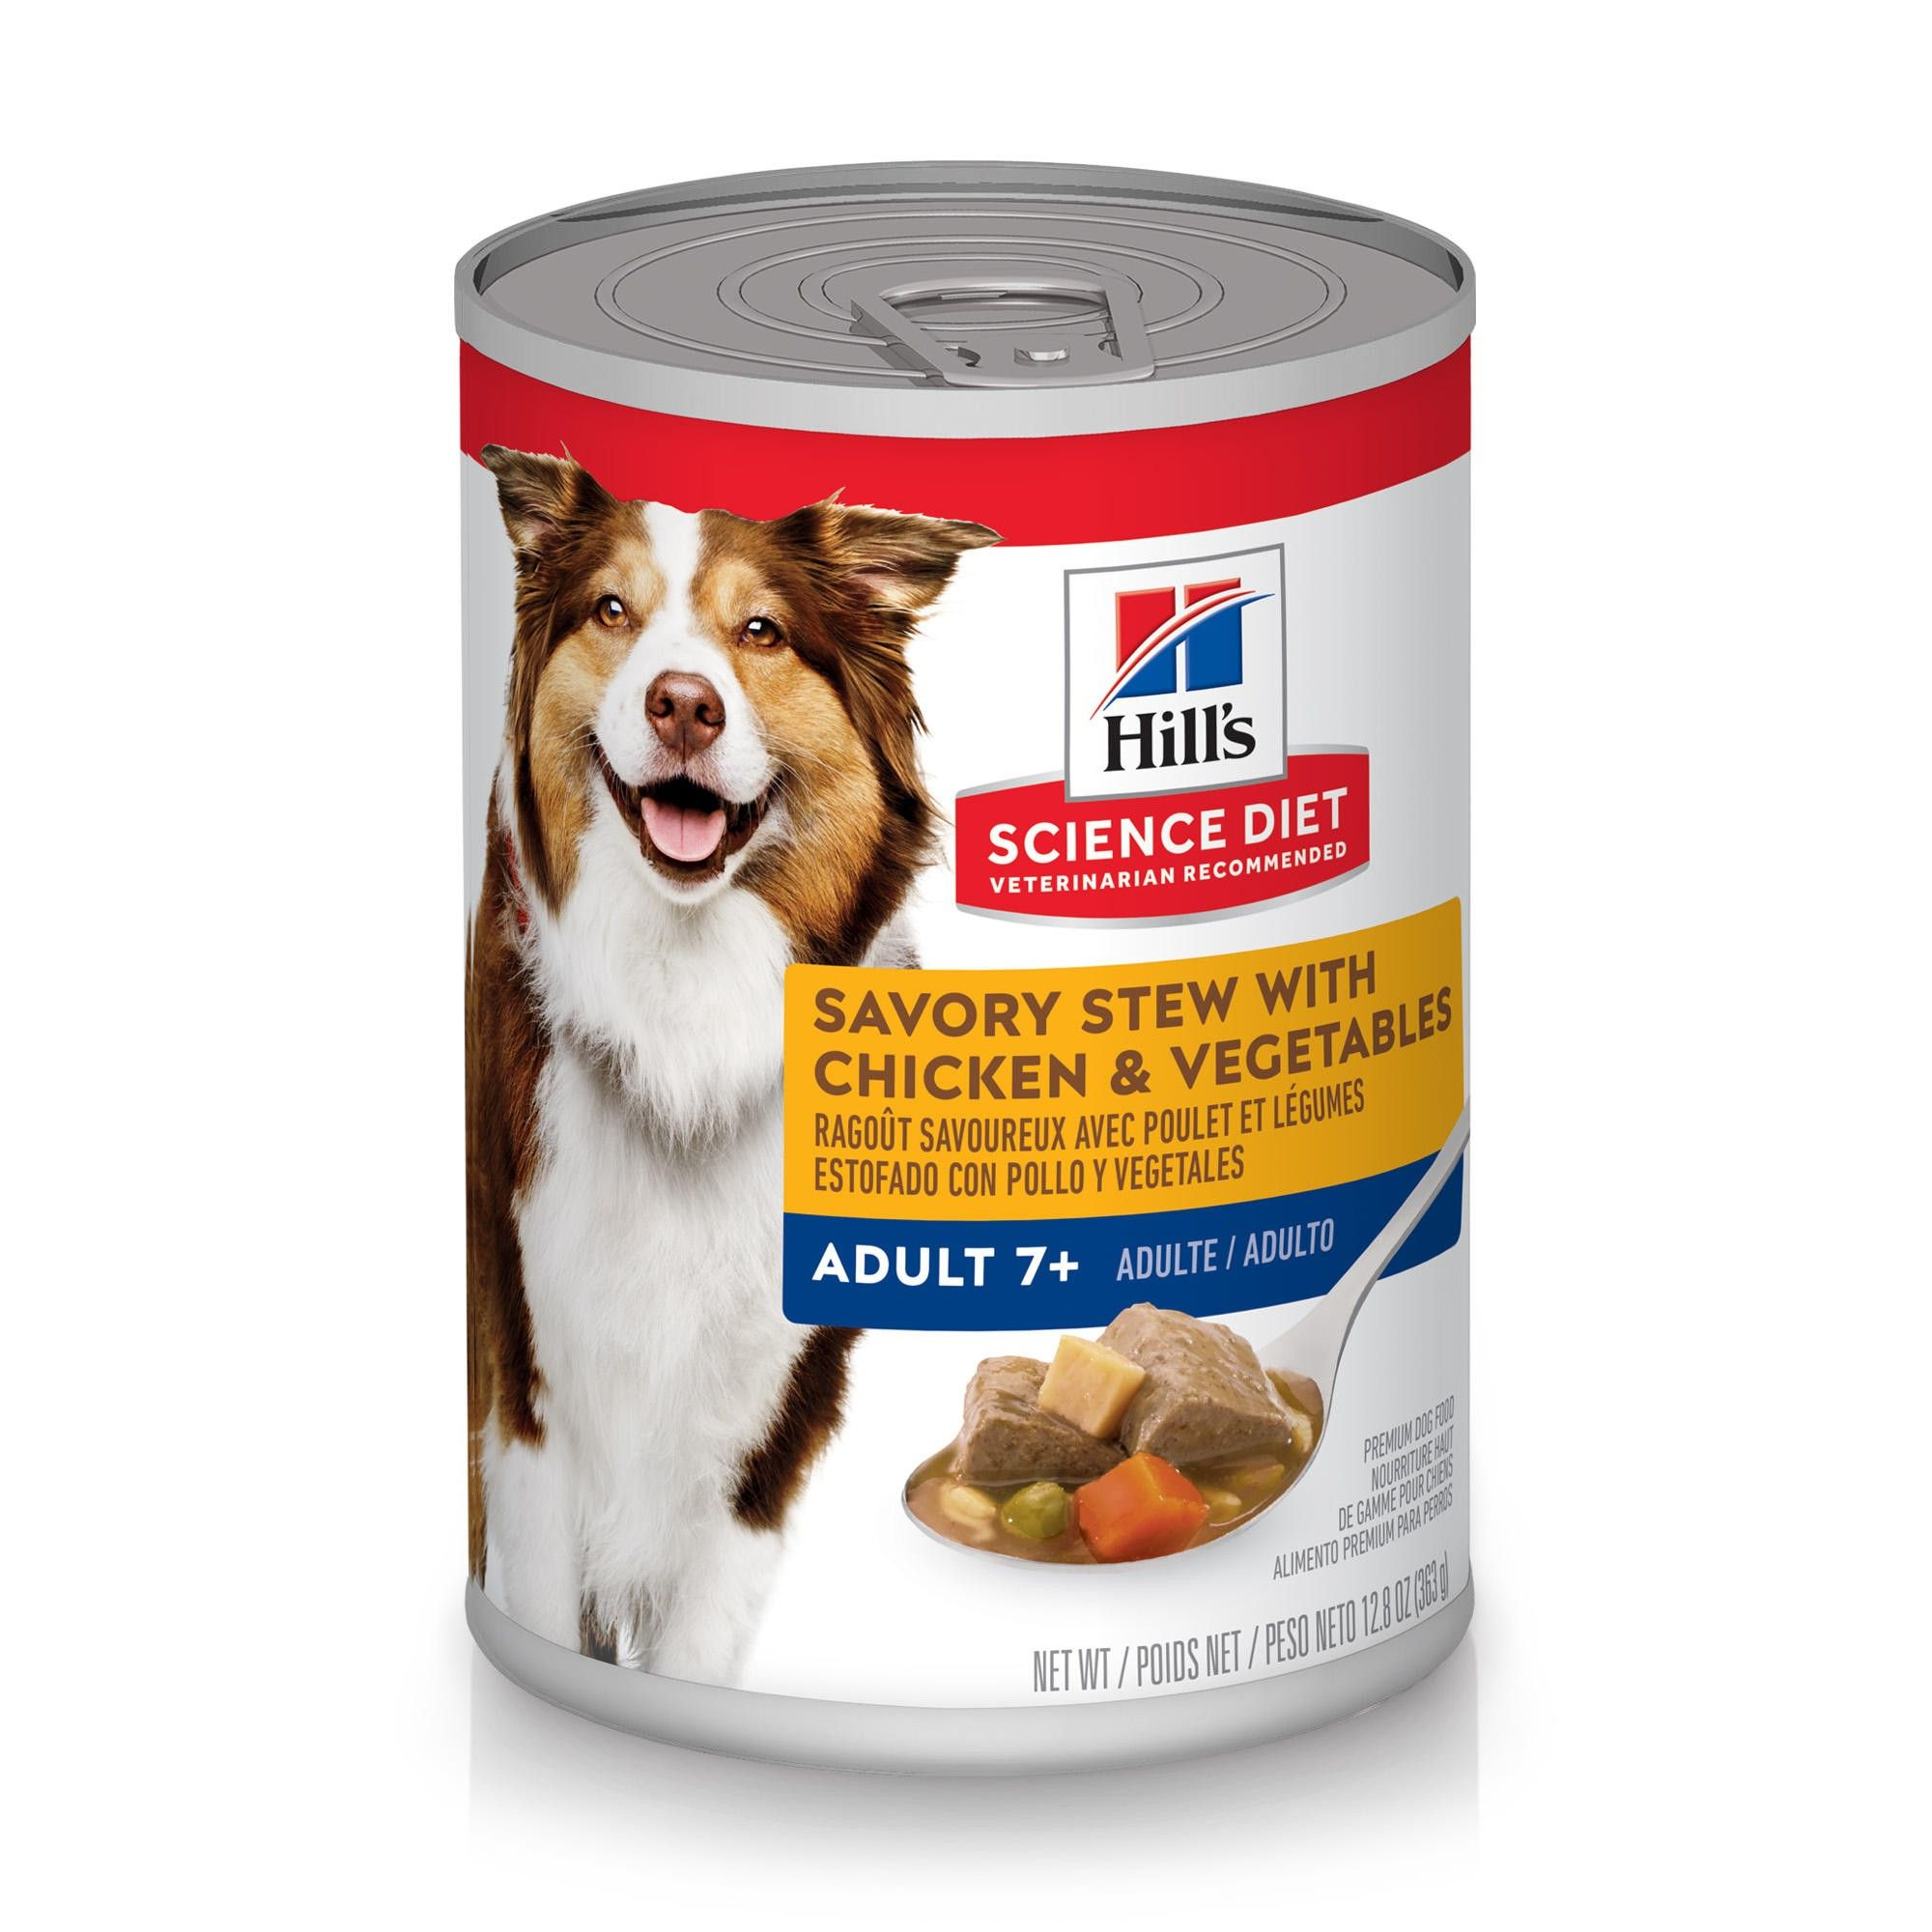 Hill's Science Diet Adult 7+ Savory Stew with Chicken & Vegetables Canned Dog Food, 12.8-oz